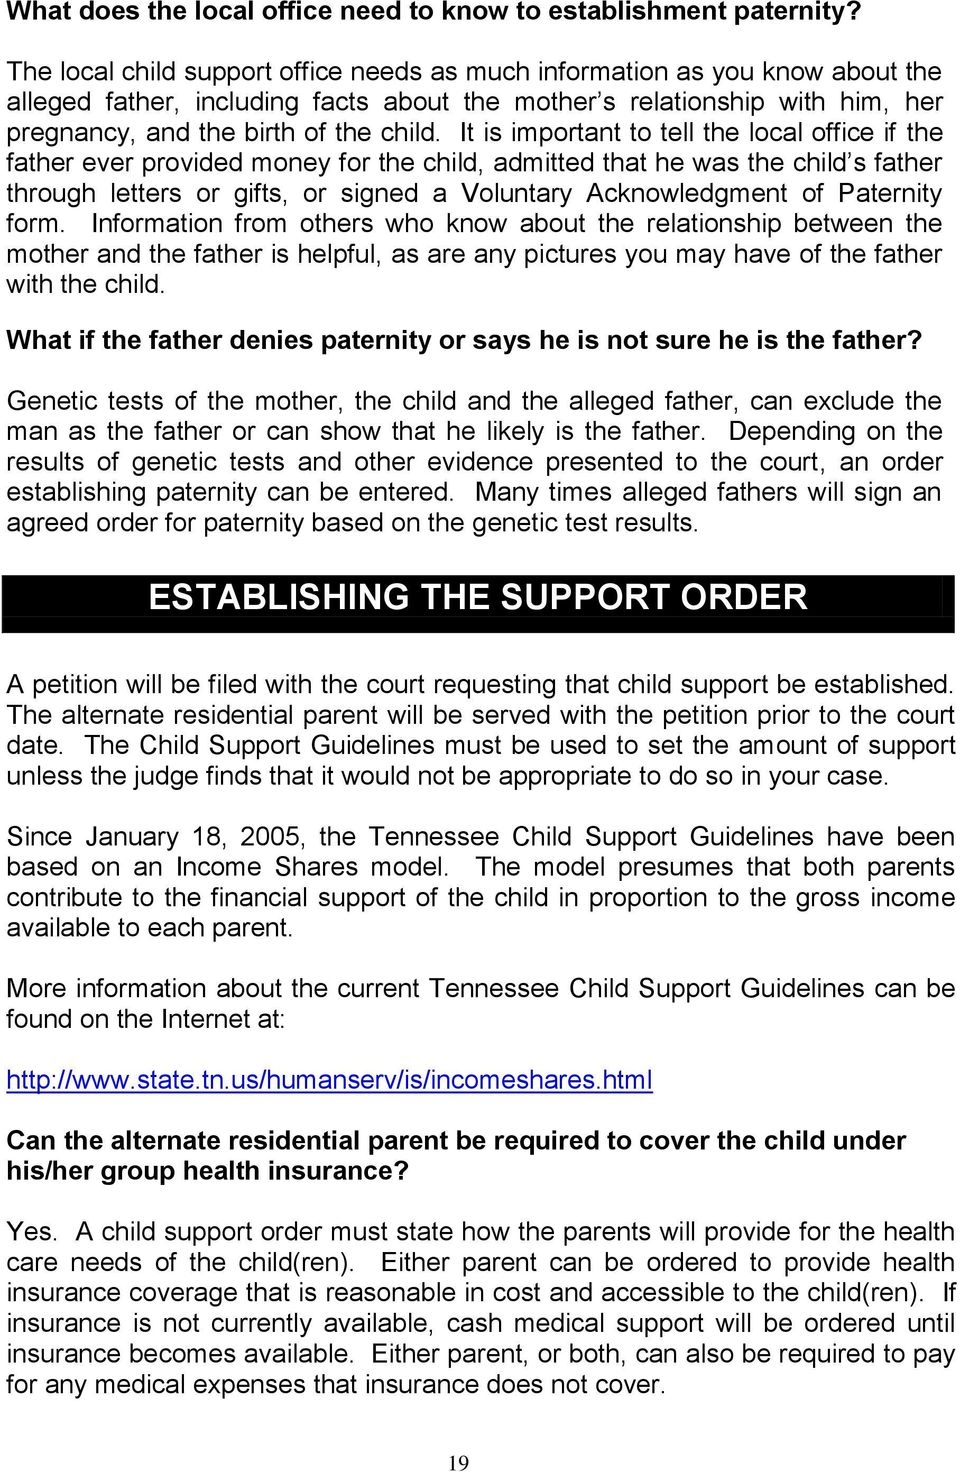 It is important to tell the local office if the father ever provided money for the child, admitted that he was the child s father through letters or gifts, or signed a Voluntary Acknowledgment of